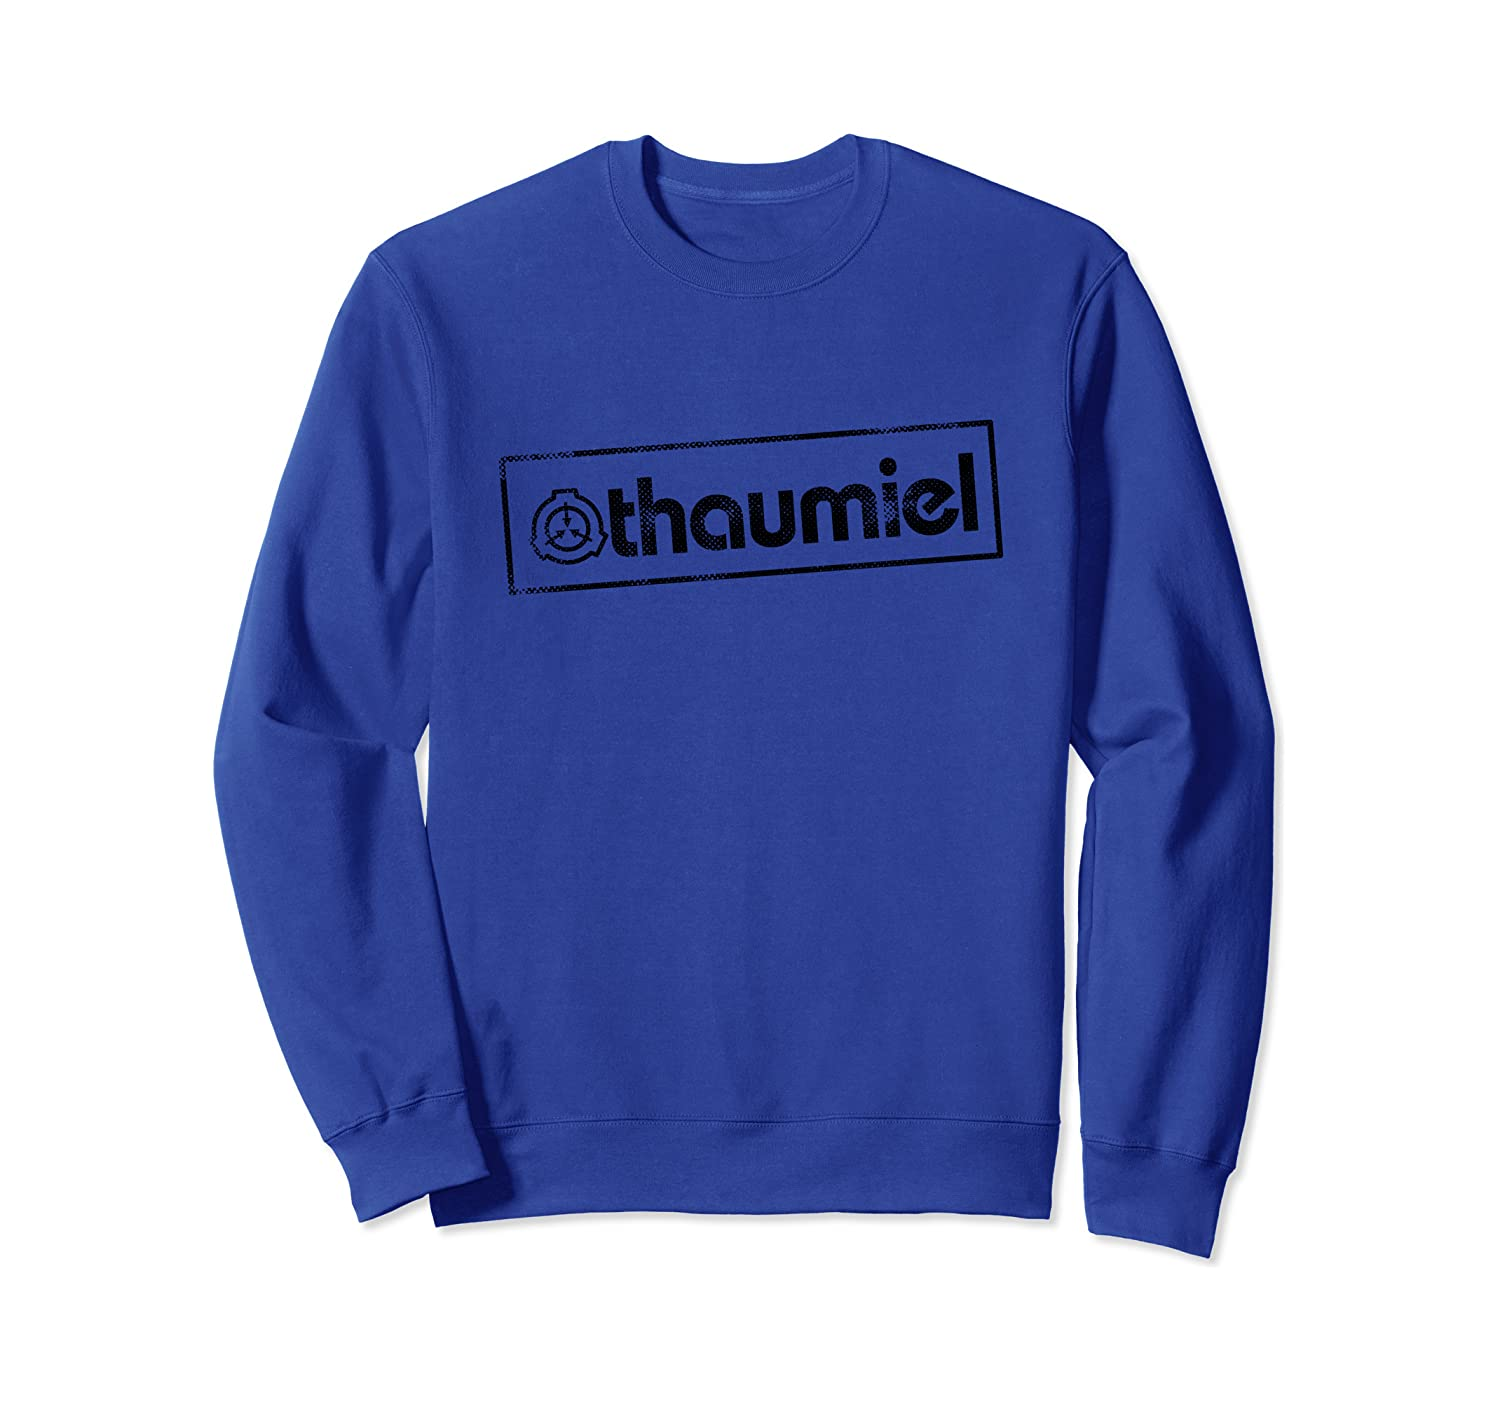 Amazon Com Scp Foundation Object Class Thaumiel Sweatshirt Clothing Become a patron of thaumiel games today: scp foundation object class thaumiel